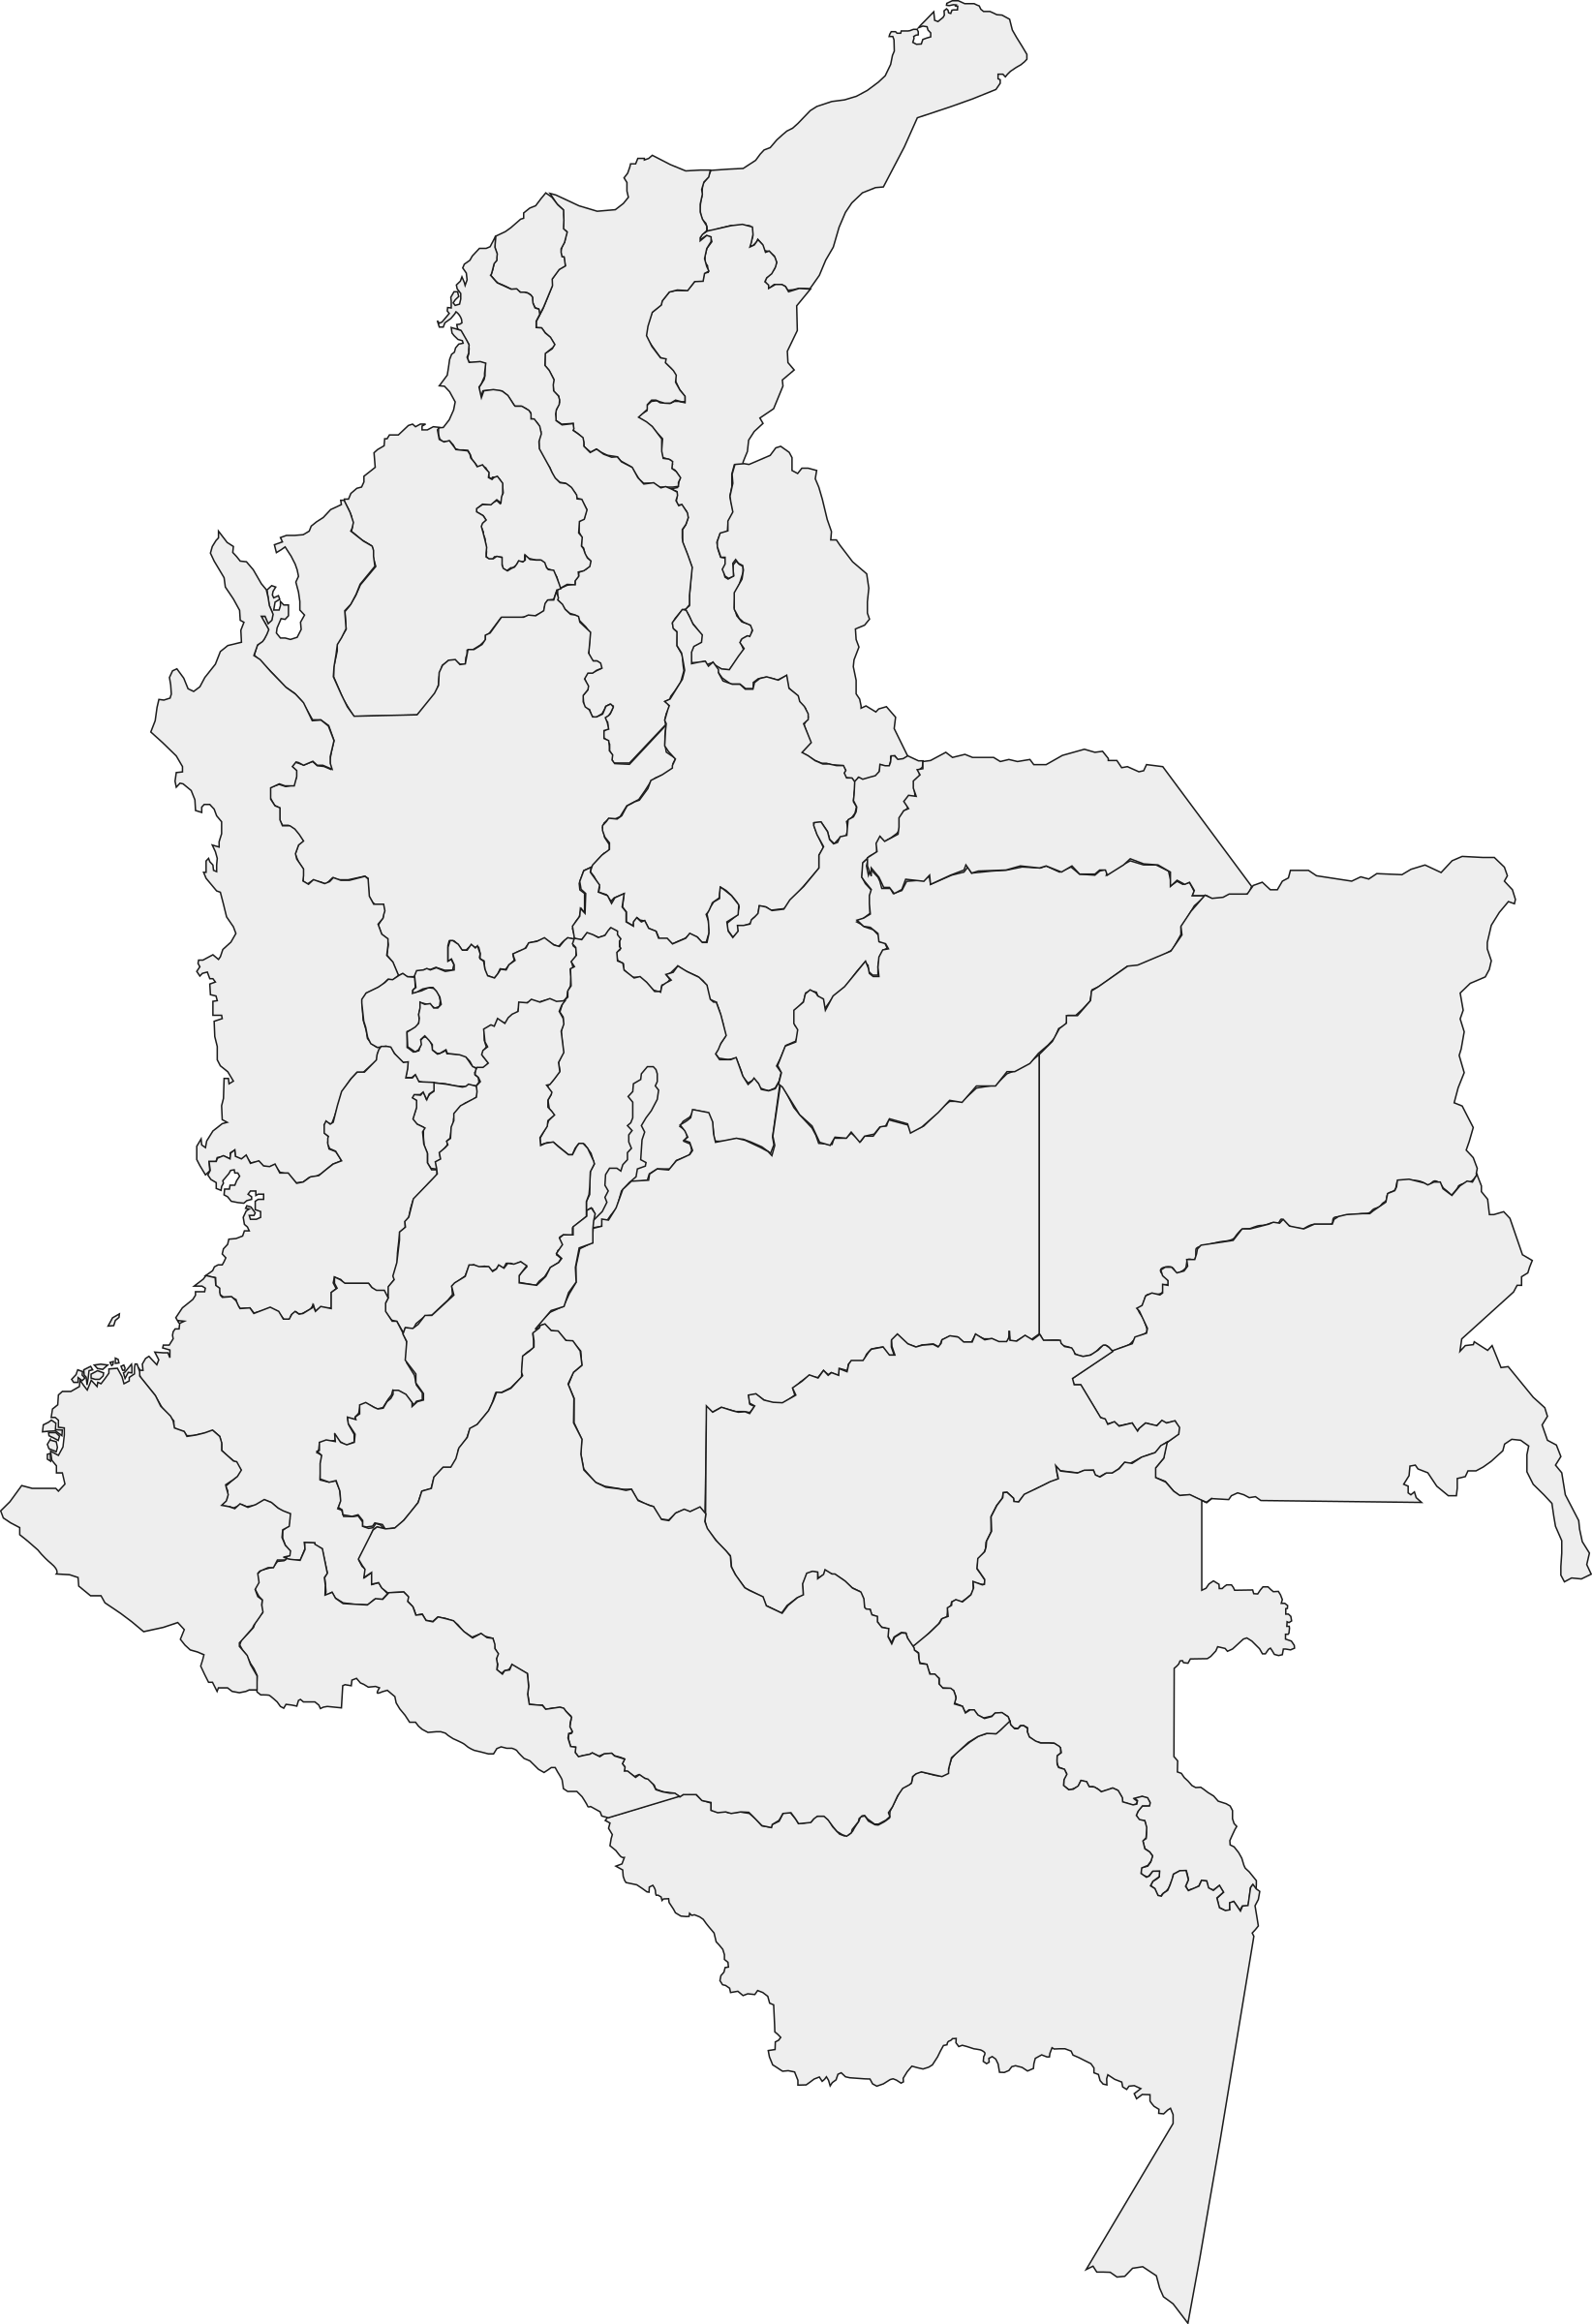 Administrative divisions of Colombia by claudita